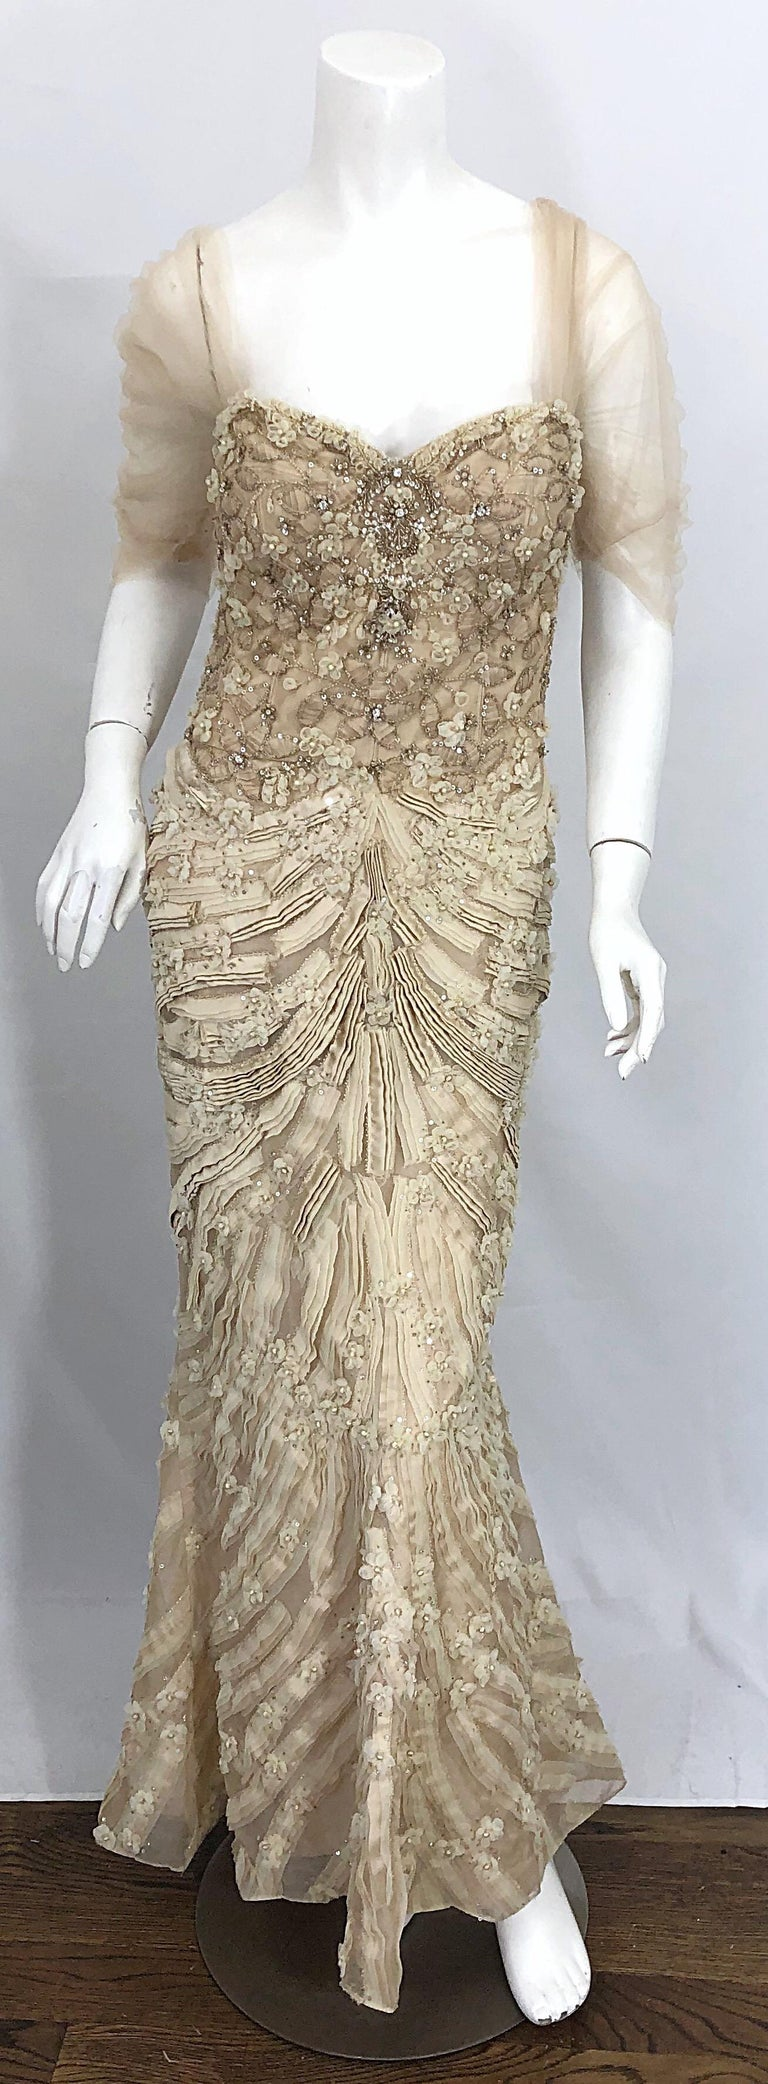 Stunning MONIQUE LHUILLIER Size 10 / 12 beige rhinestone beaded silk evening mermaid gown / dress! Words cannot even begin to describe the intricate details on this rare gem that retailed for over $12k. The ribbon detail is phenomenal, and